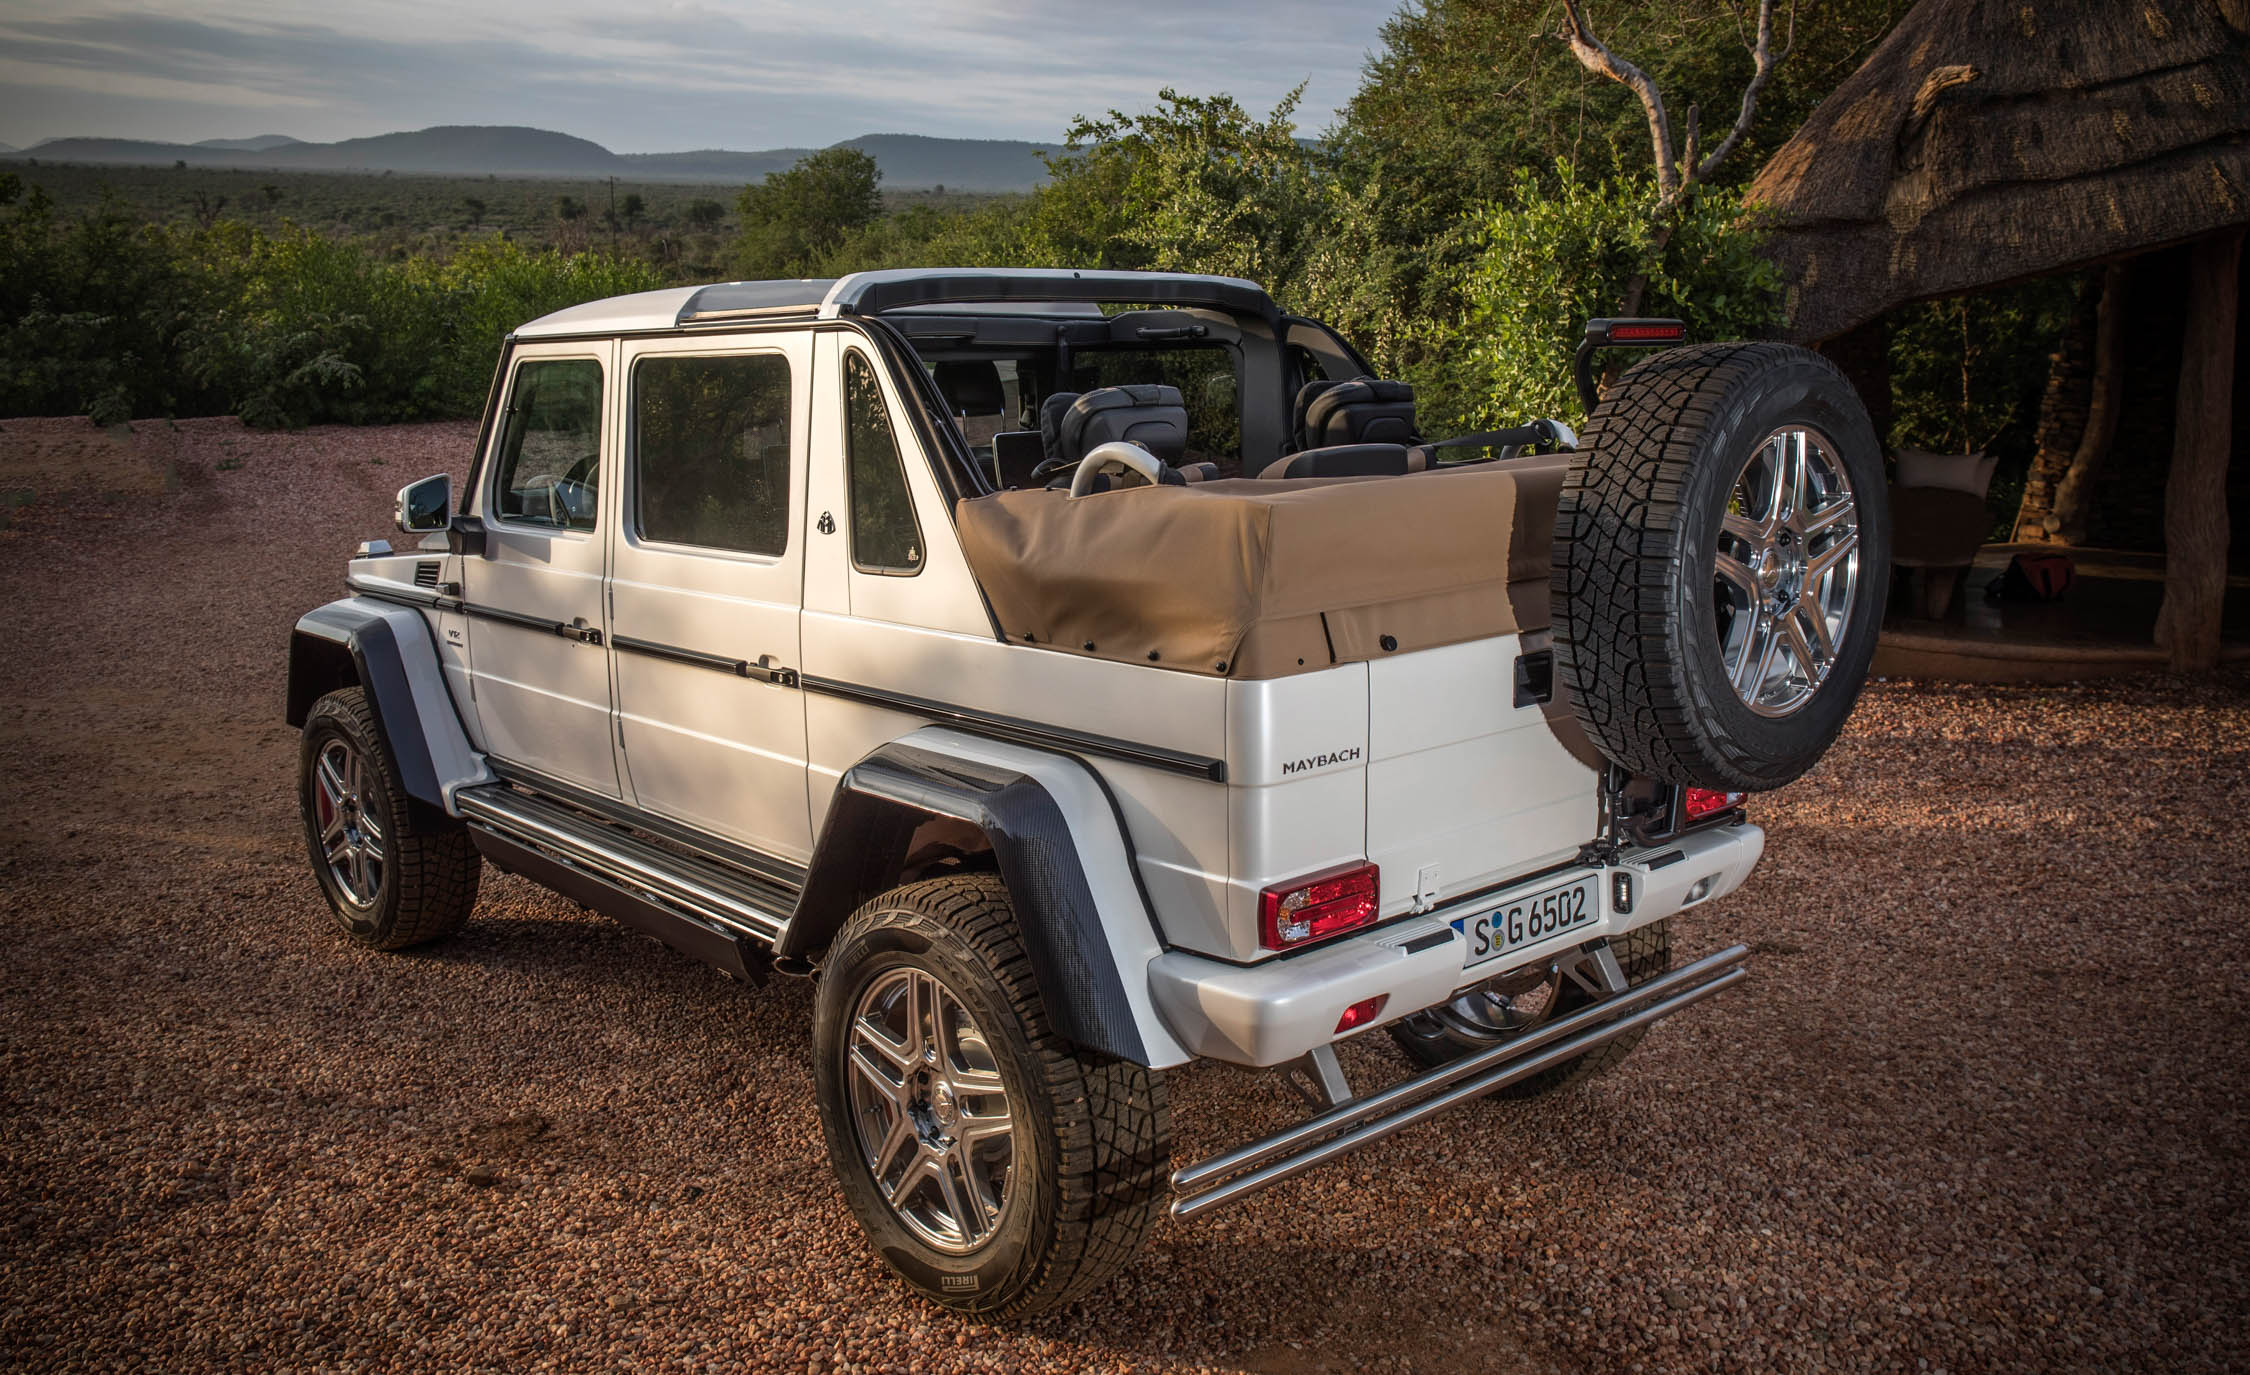 2018 Mercedes Maybach G650 Landaulet White Exterior Side And Rear Roof Open (Photo 2 of 52)